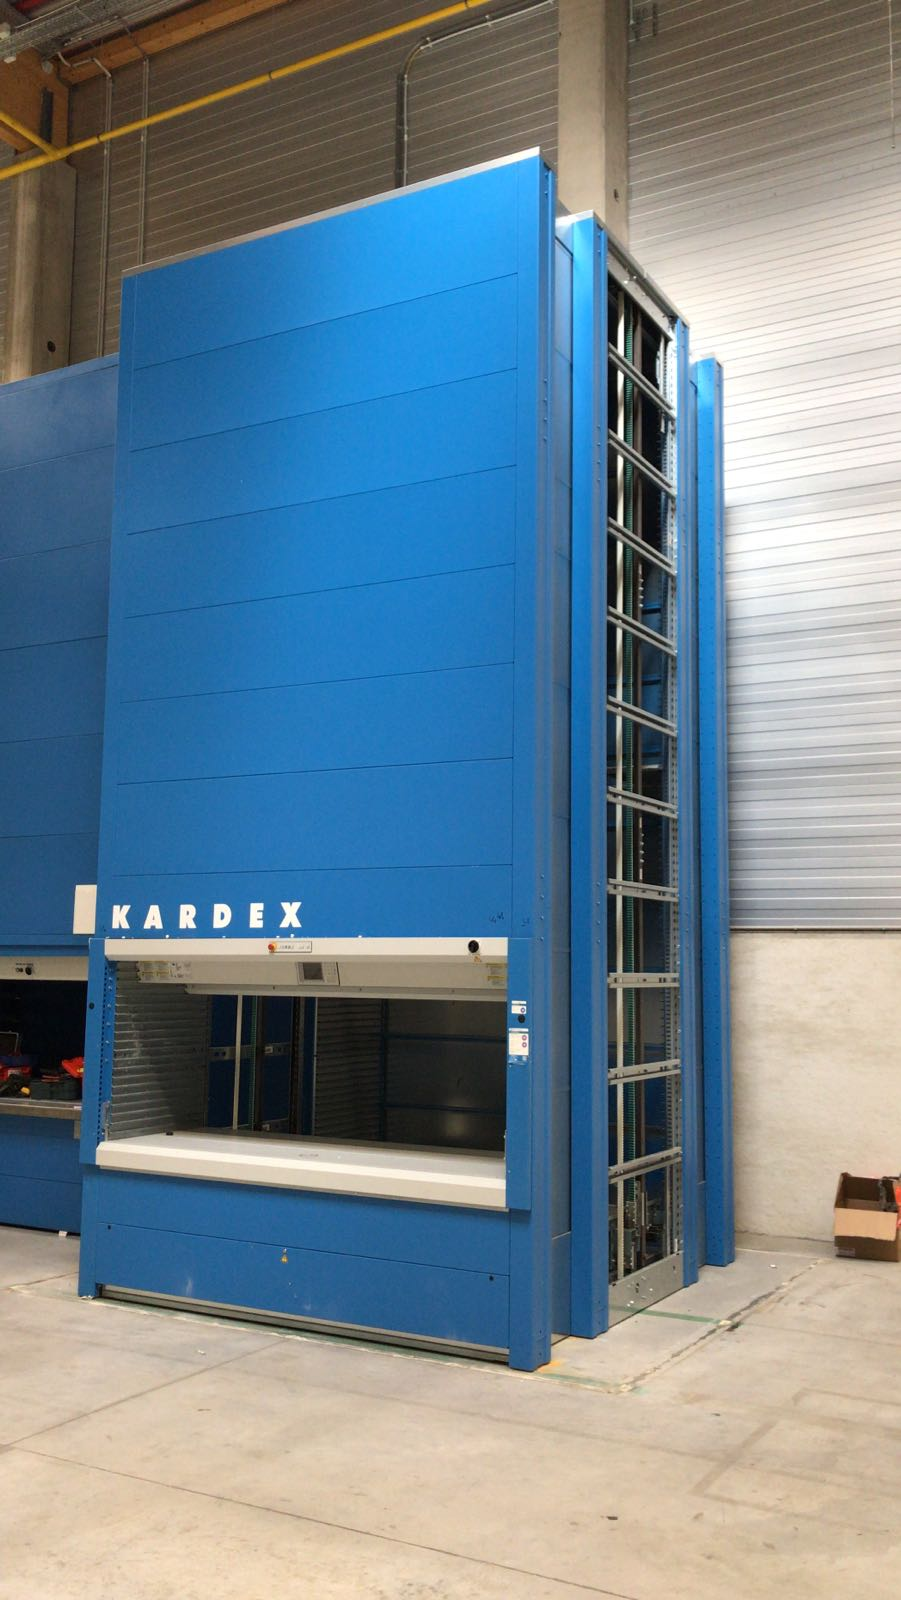 Kardex Shuttle XP250 - 10007285 - Exapro